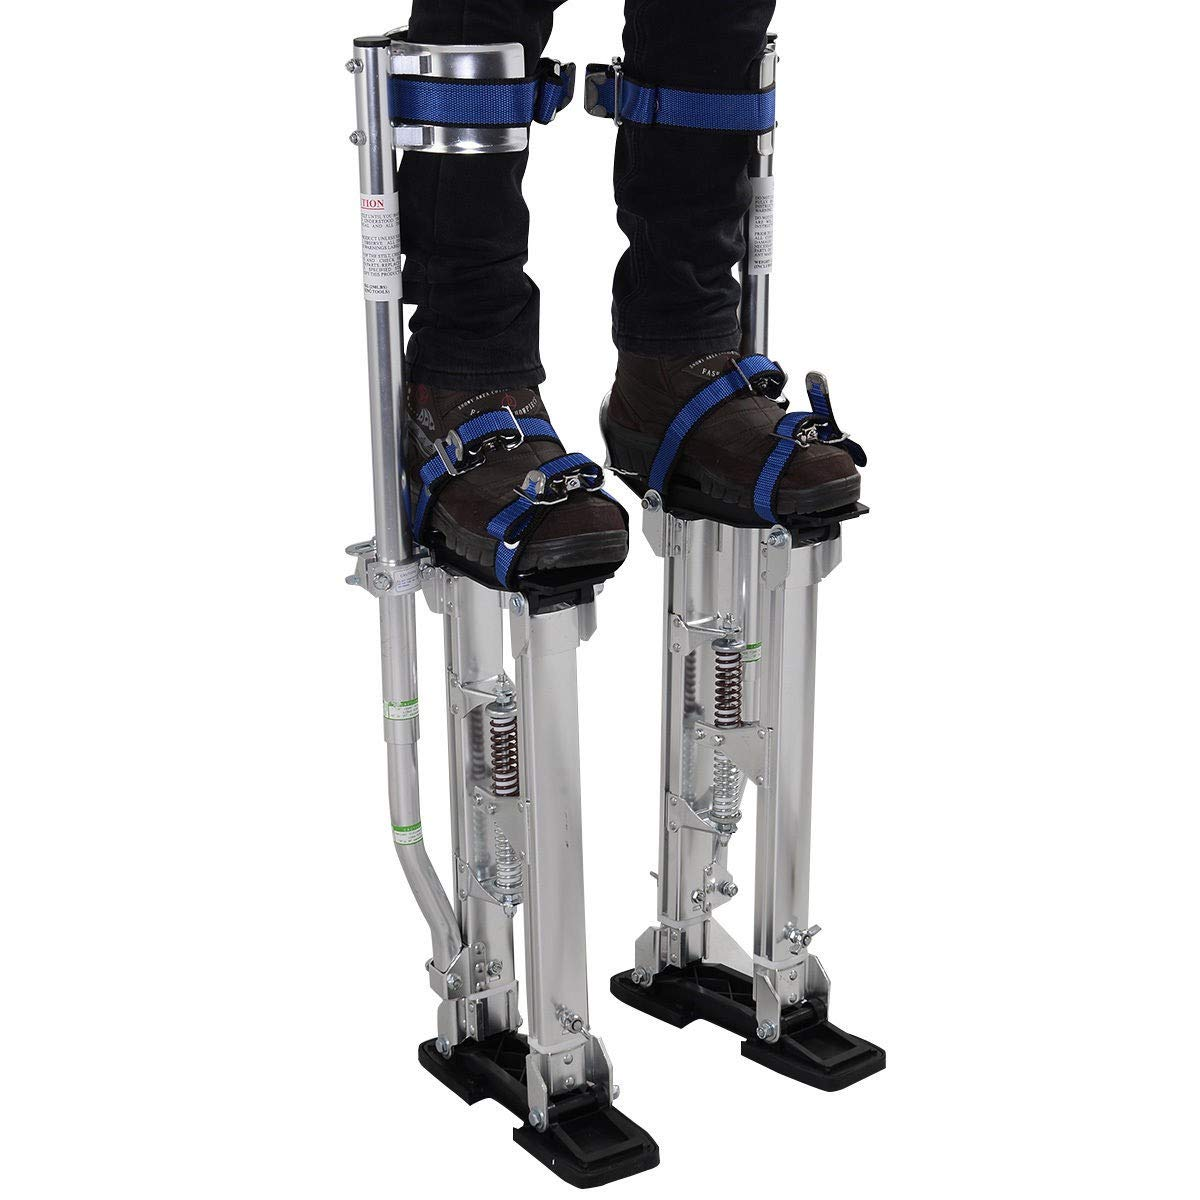 Brand New and Silver 18''-30'' Drywall Aluminum Stilts, Light-weight Easy to Carry, Suitable for Both Indoor and Outdoor Use - LeZhel Shop